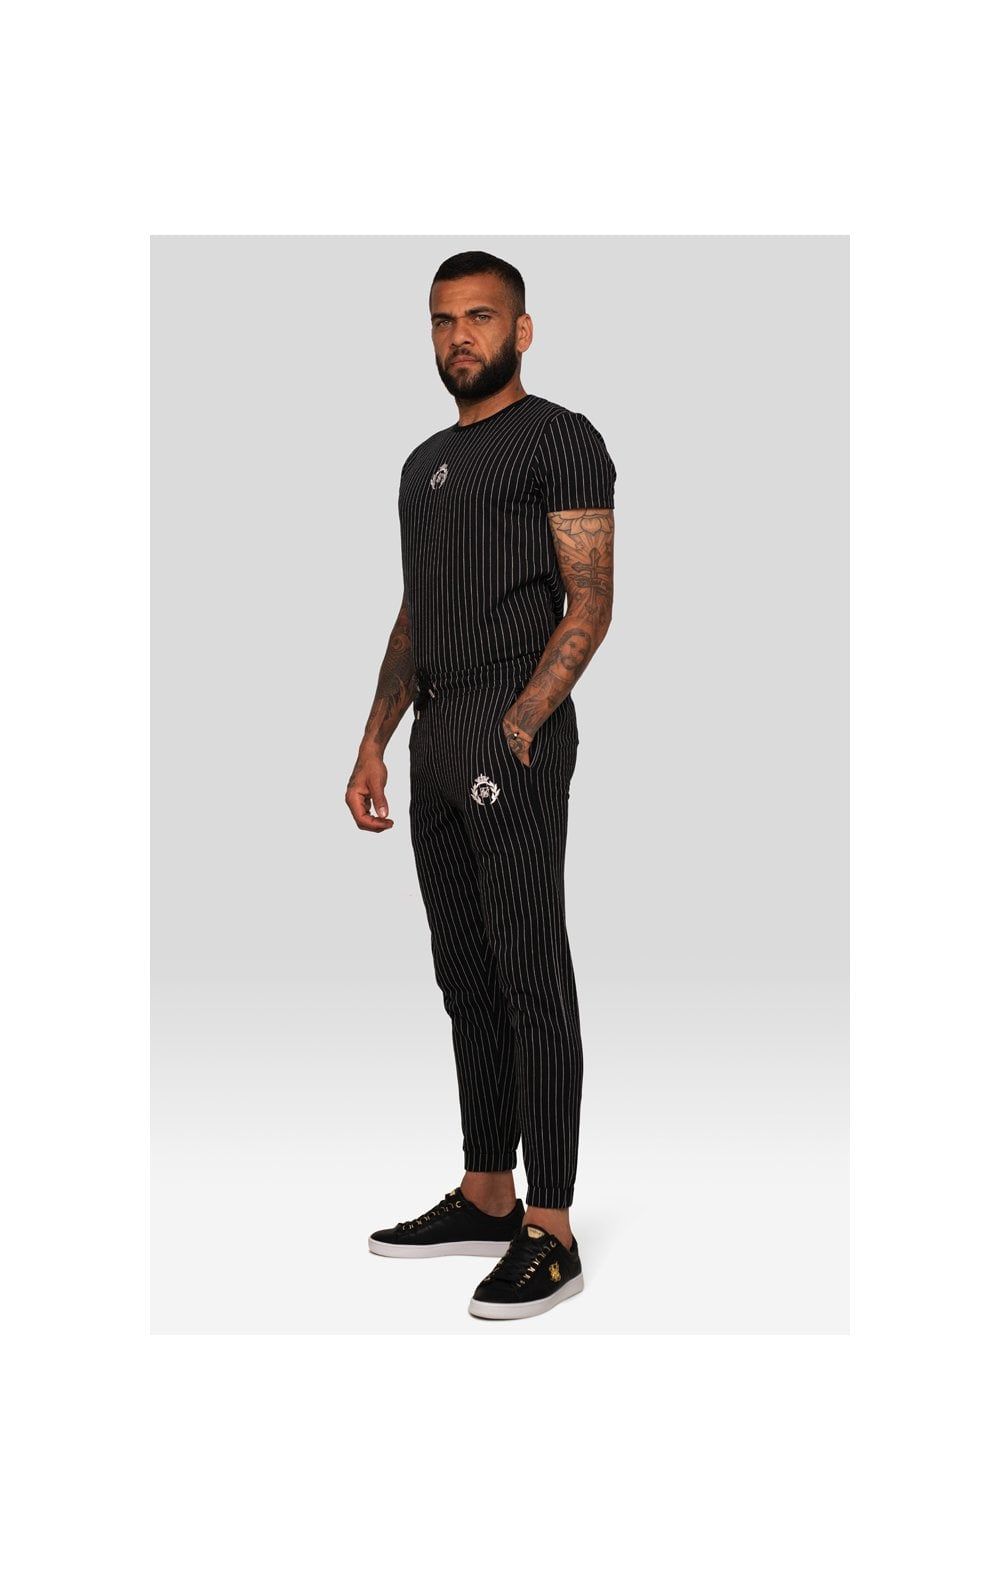 Load image into Gallery viewer, SikSilk x Dani Alves Curved Hem Gym Tee – Black & White (2)